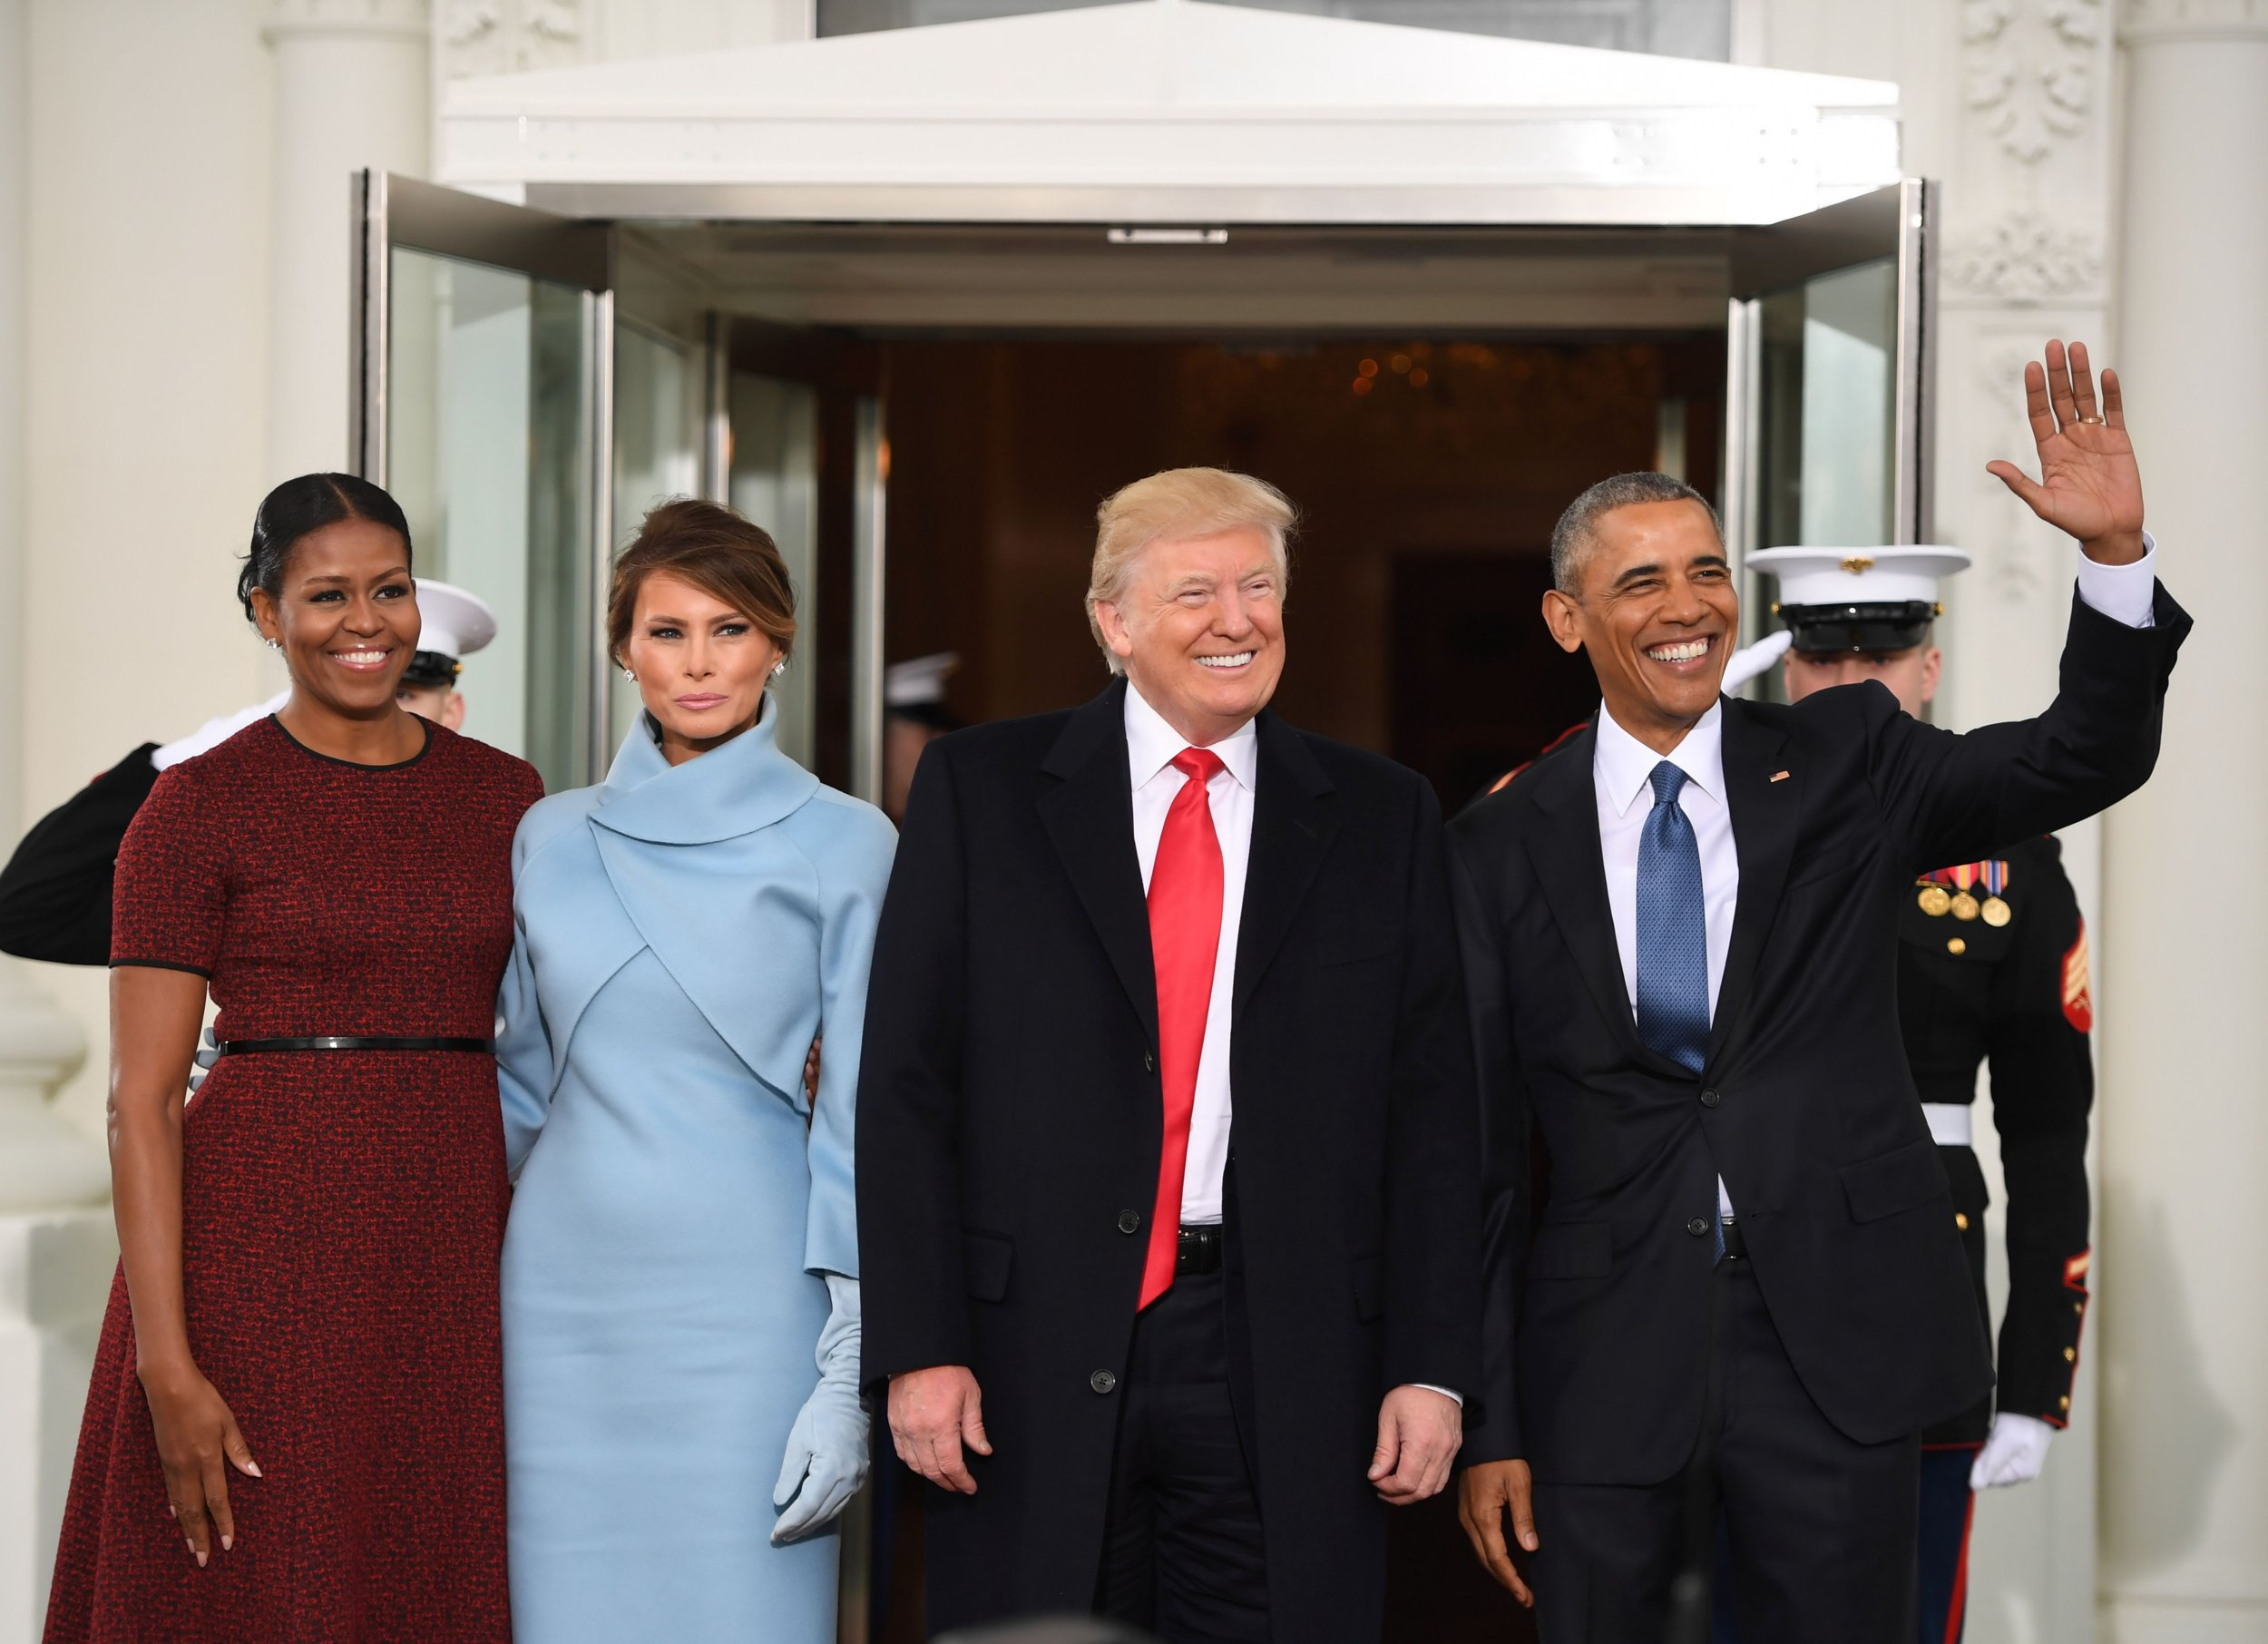 US President Barack Obama(R) and First Lady Michelle Obama(L) welcome Preisdent-elect Donald Trump(2nd-R) and his wife Melania to the White House in Washington, DC January 20, 2017. / AFP PHOTO / JIM WATSONJIM WATSON/AFP/Getty Images